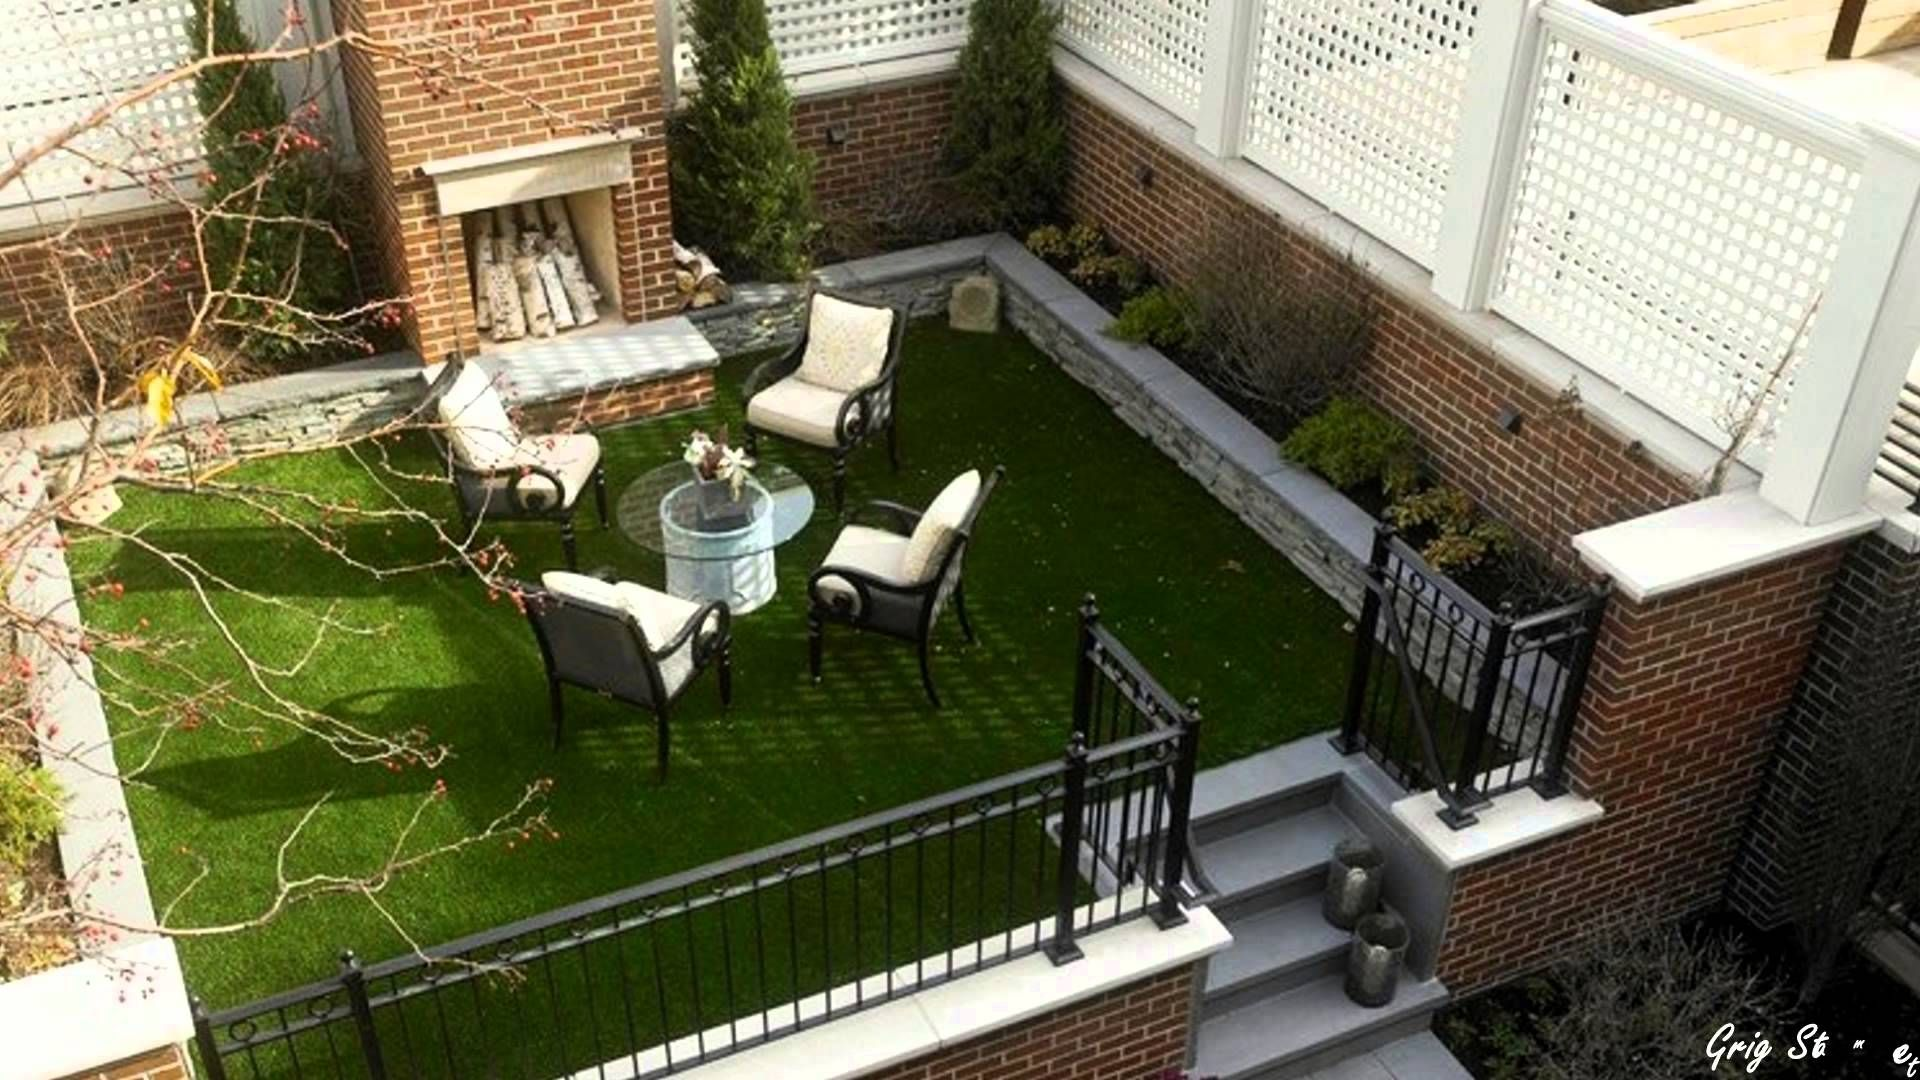 Courtyard Designs Small City Garden Ideas Beautiful Urban Courtyard Designs